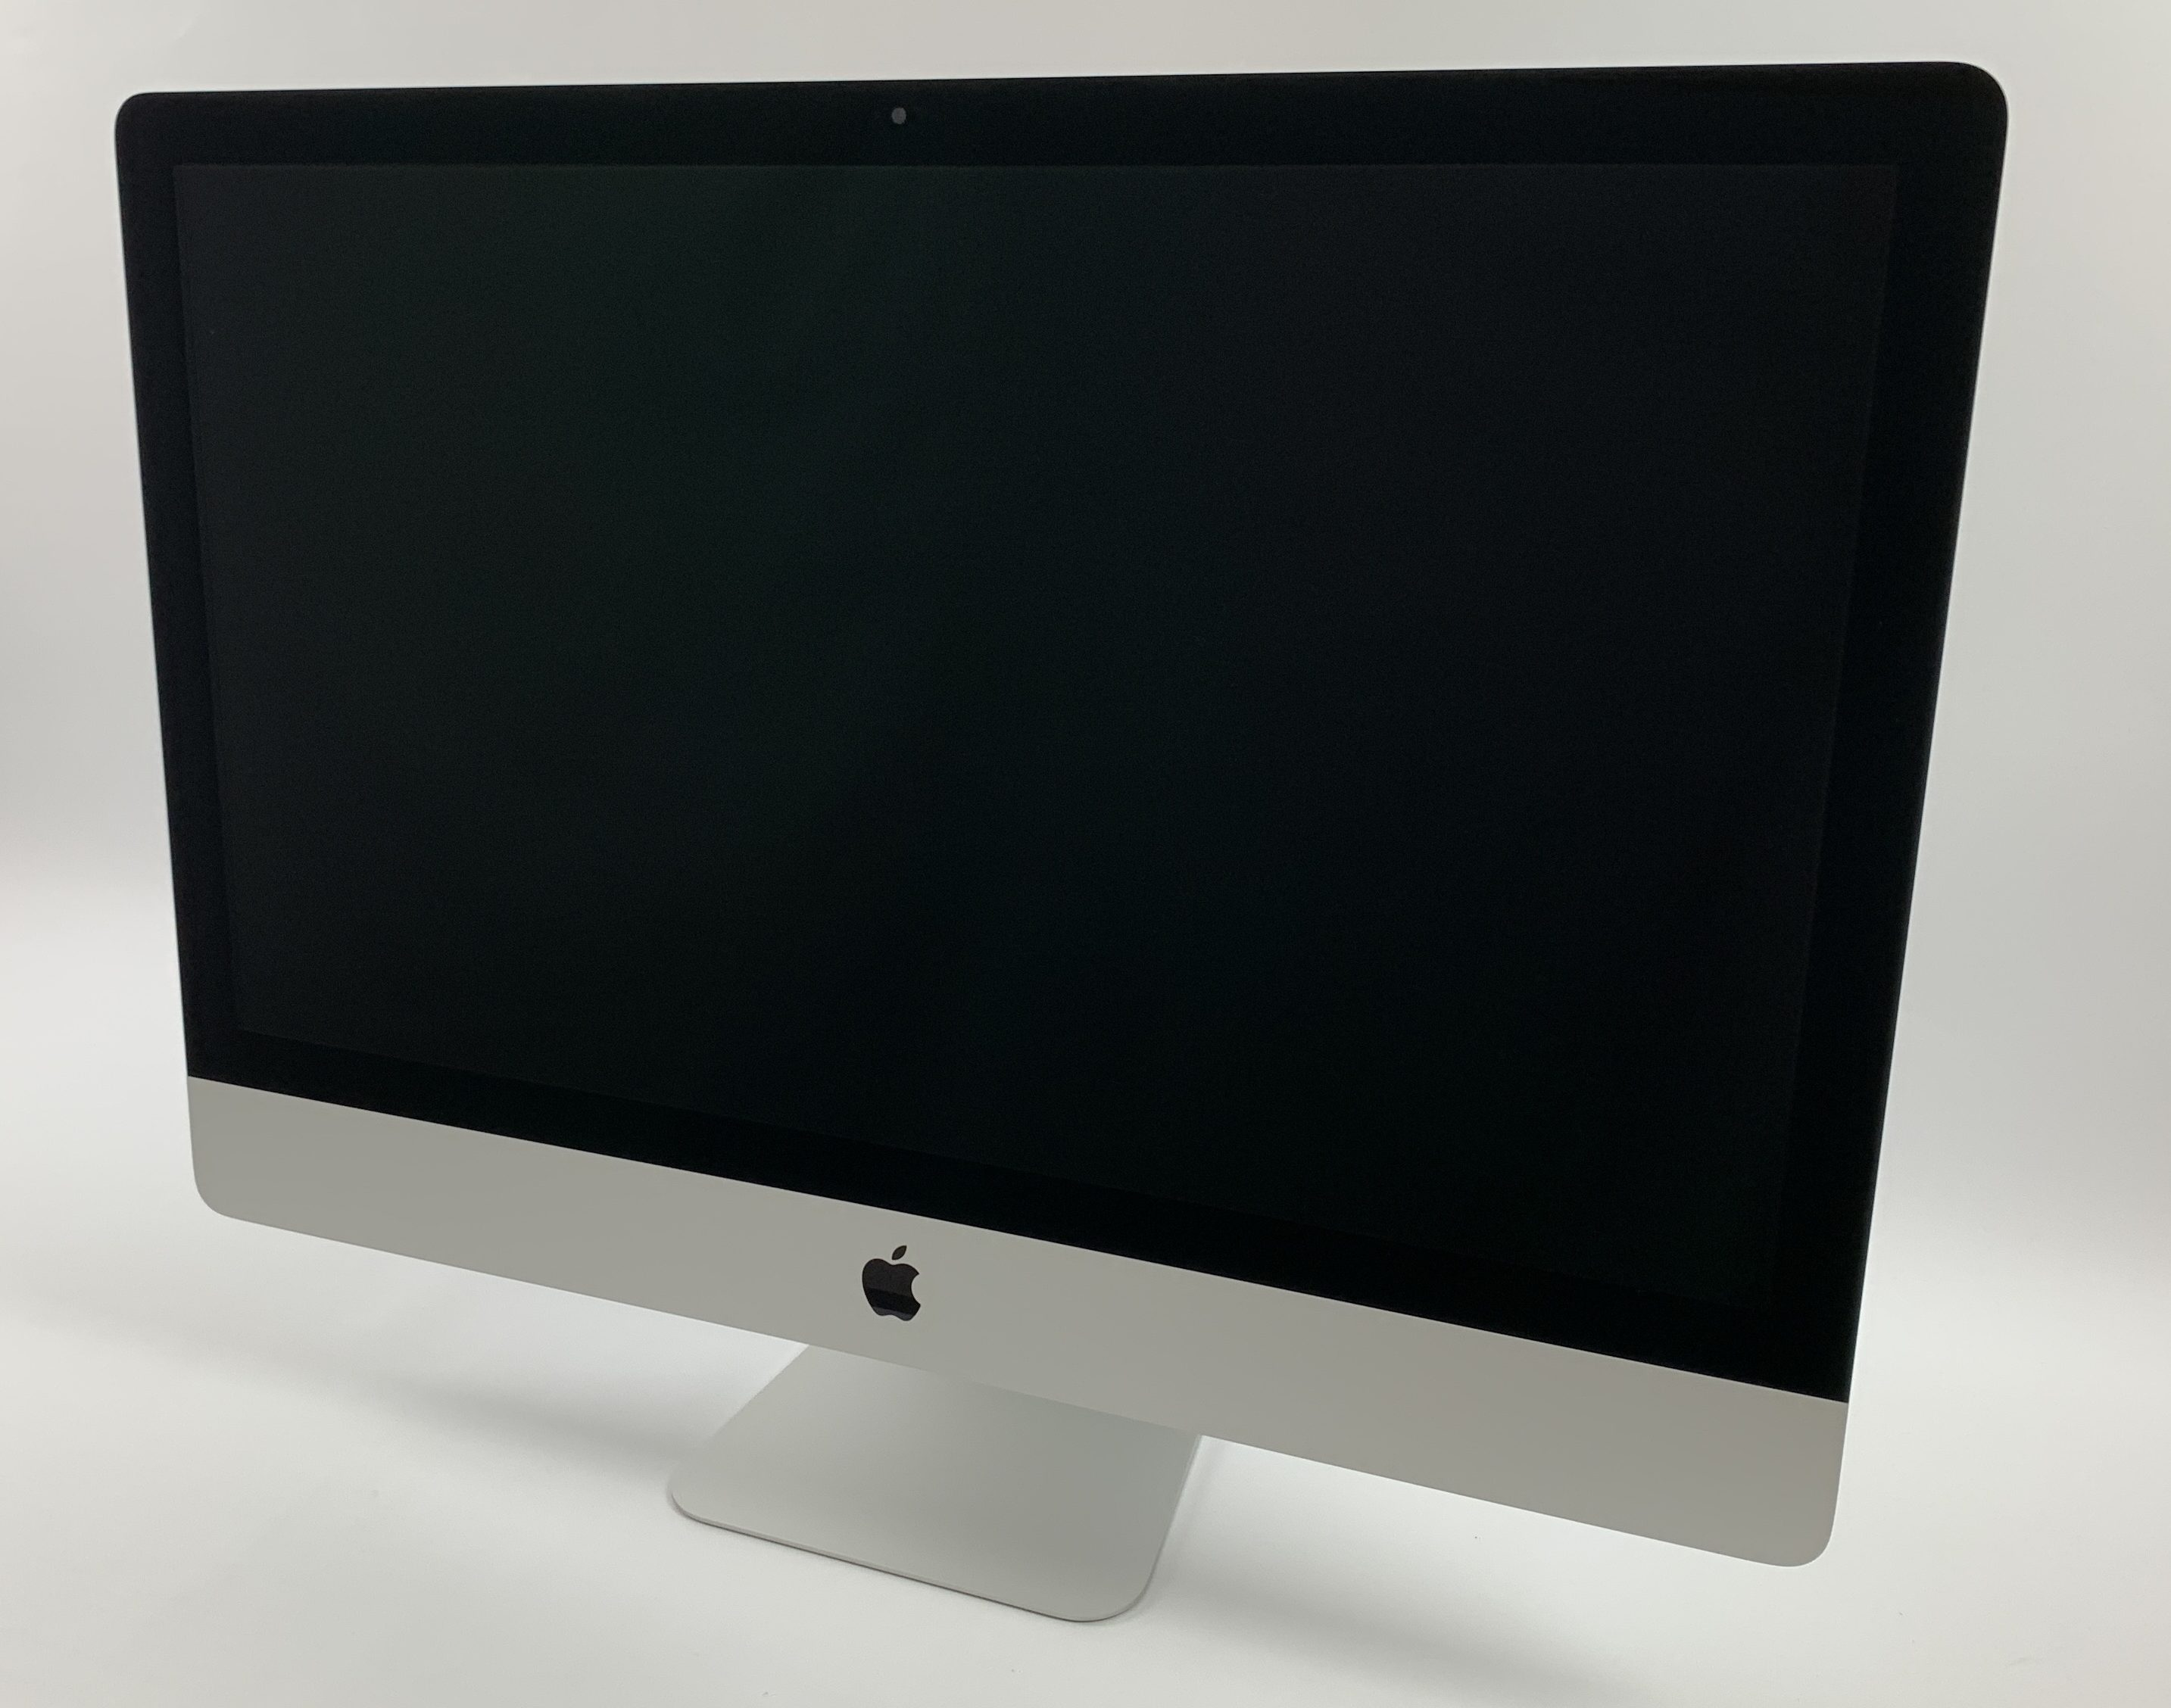 "iMac 27"" Retina 5K Mid 2020 (Intel 6-Core i5 3.3 GHz 8 GB RAM 512 GB SSD), Intel 6-Core i5 3.3 GHz, 8 GB RAM, 512 GB SSD, image 1"